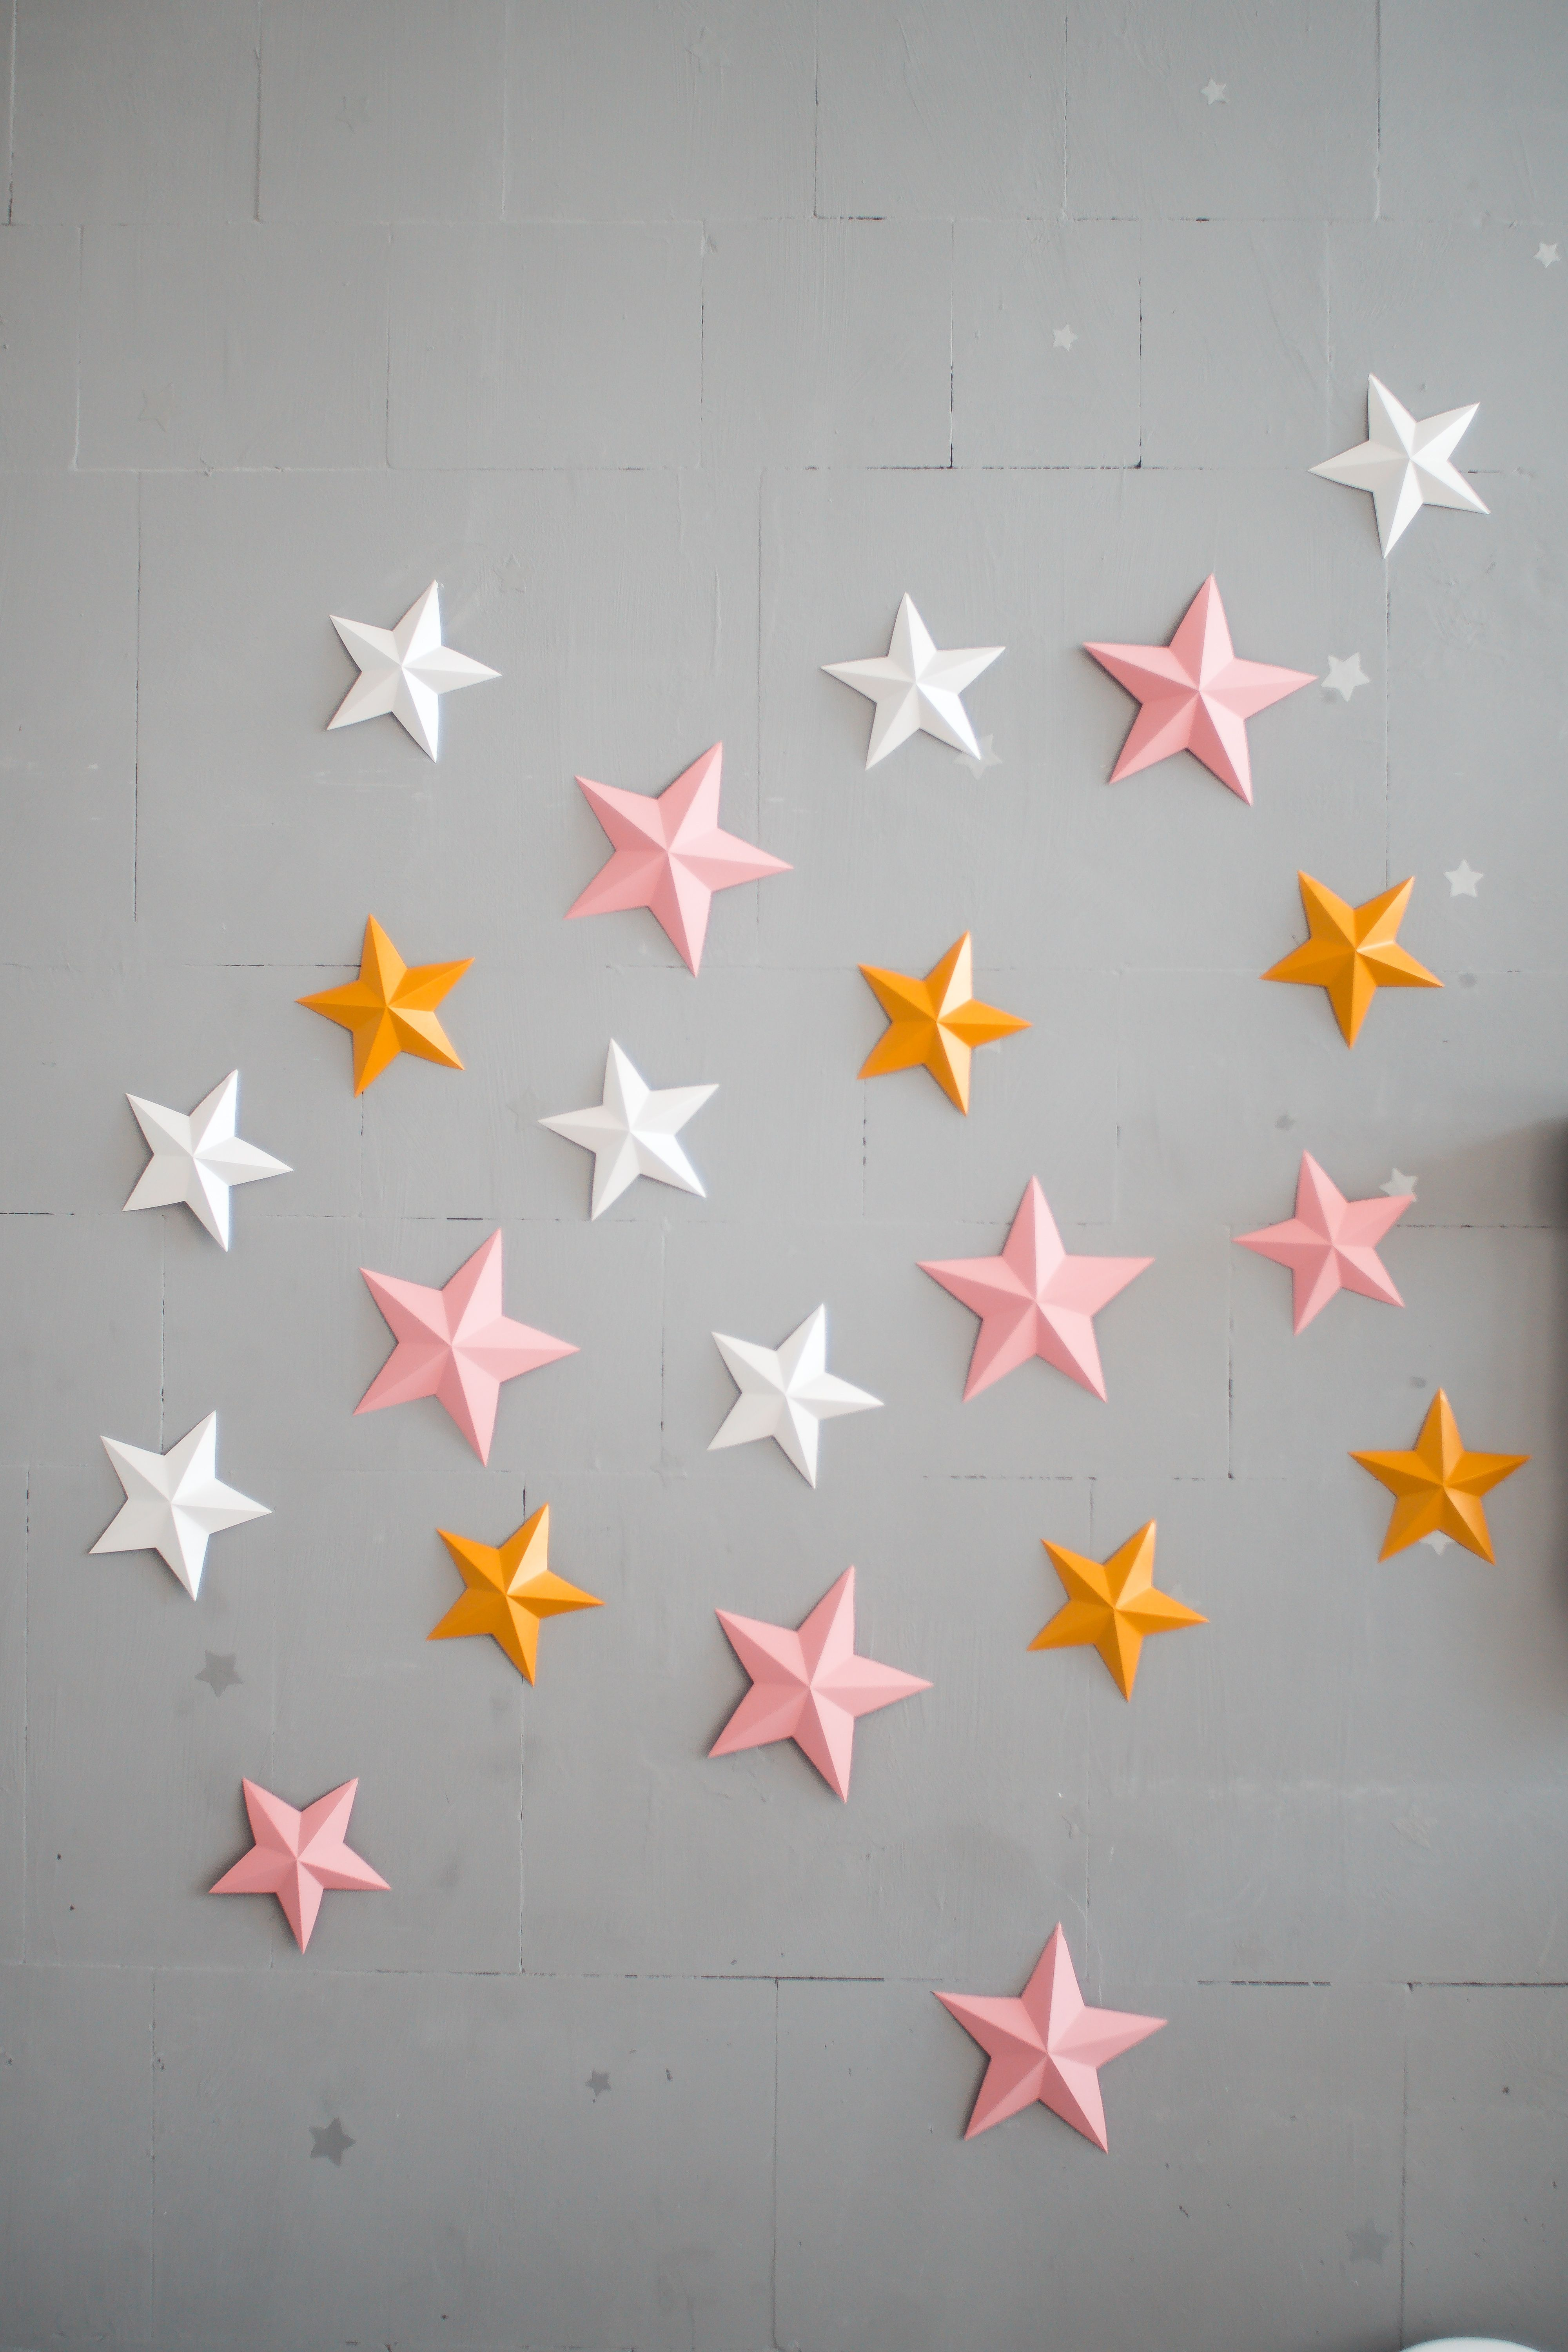 Twinkle Twinkle Little Star 3d Paper Stars Pink Gold Wall Decoration Pink Nursery Decor Baby Room Stars Decor